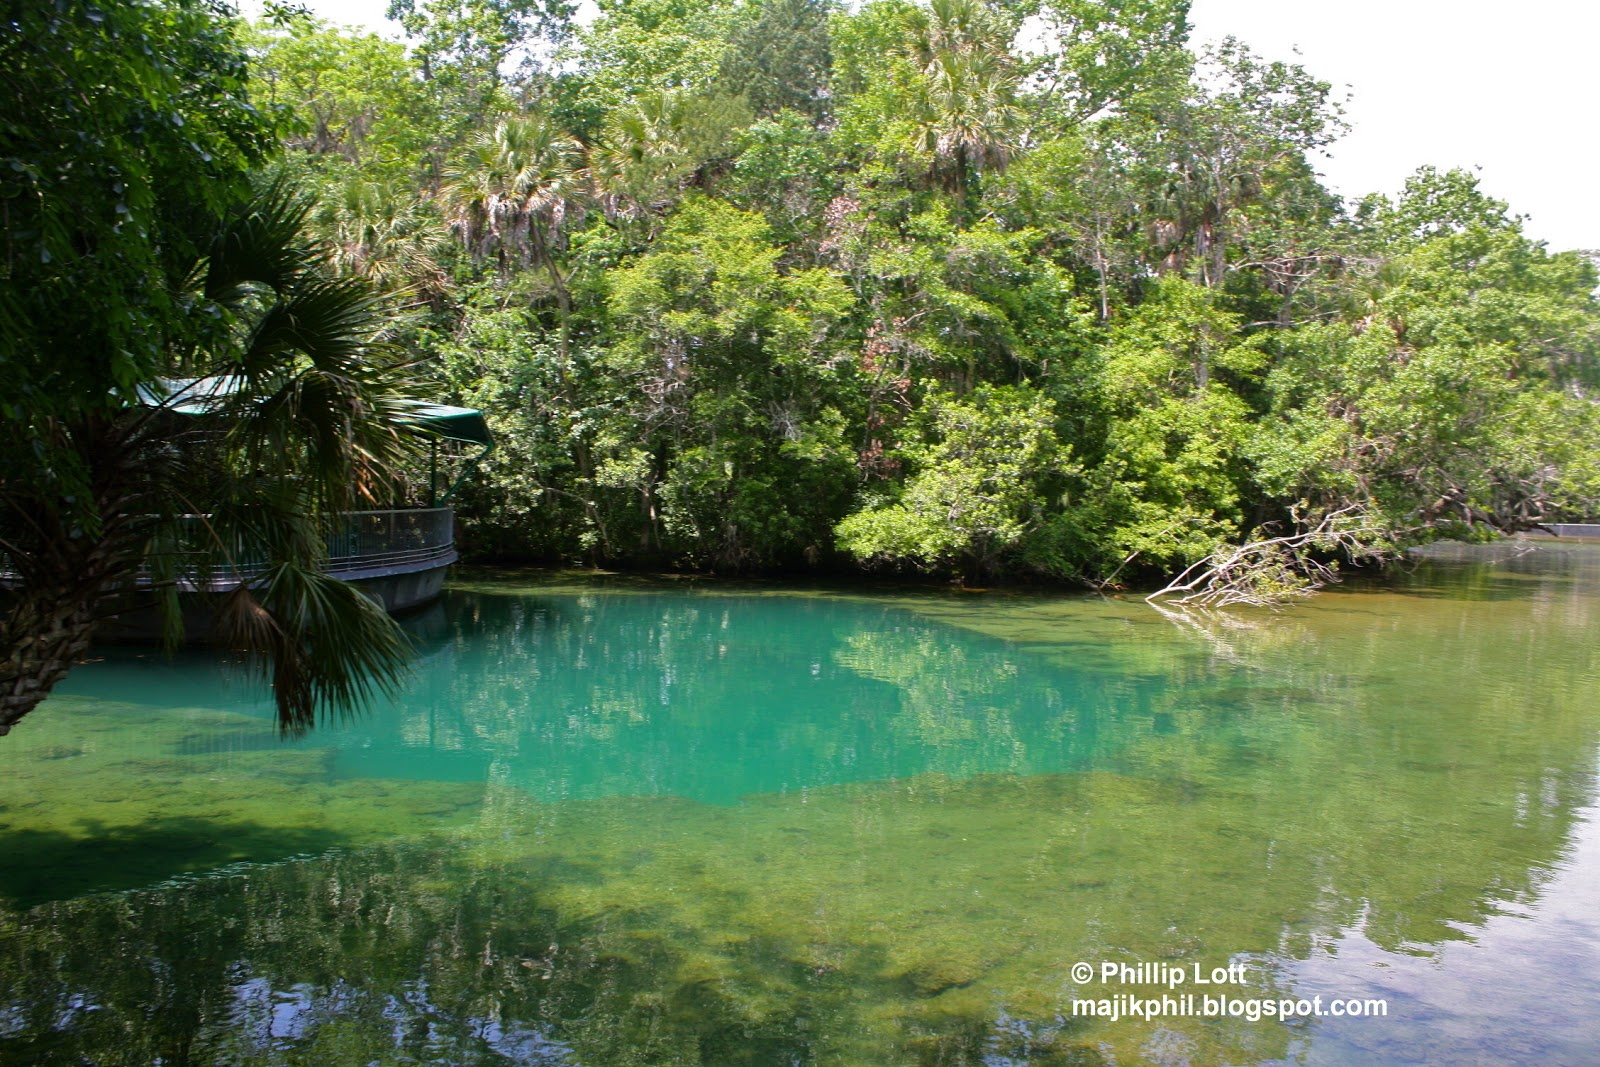 homosassa springs Homosassa springs tourism: tripadvisor has 3,361 reviews of homosassa springs hotels, attractions, and restaurants making it your best homosassa springs resource.